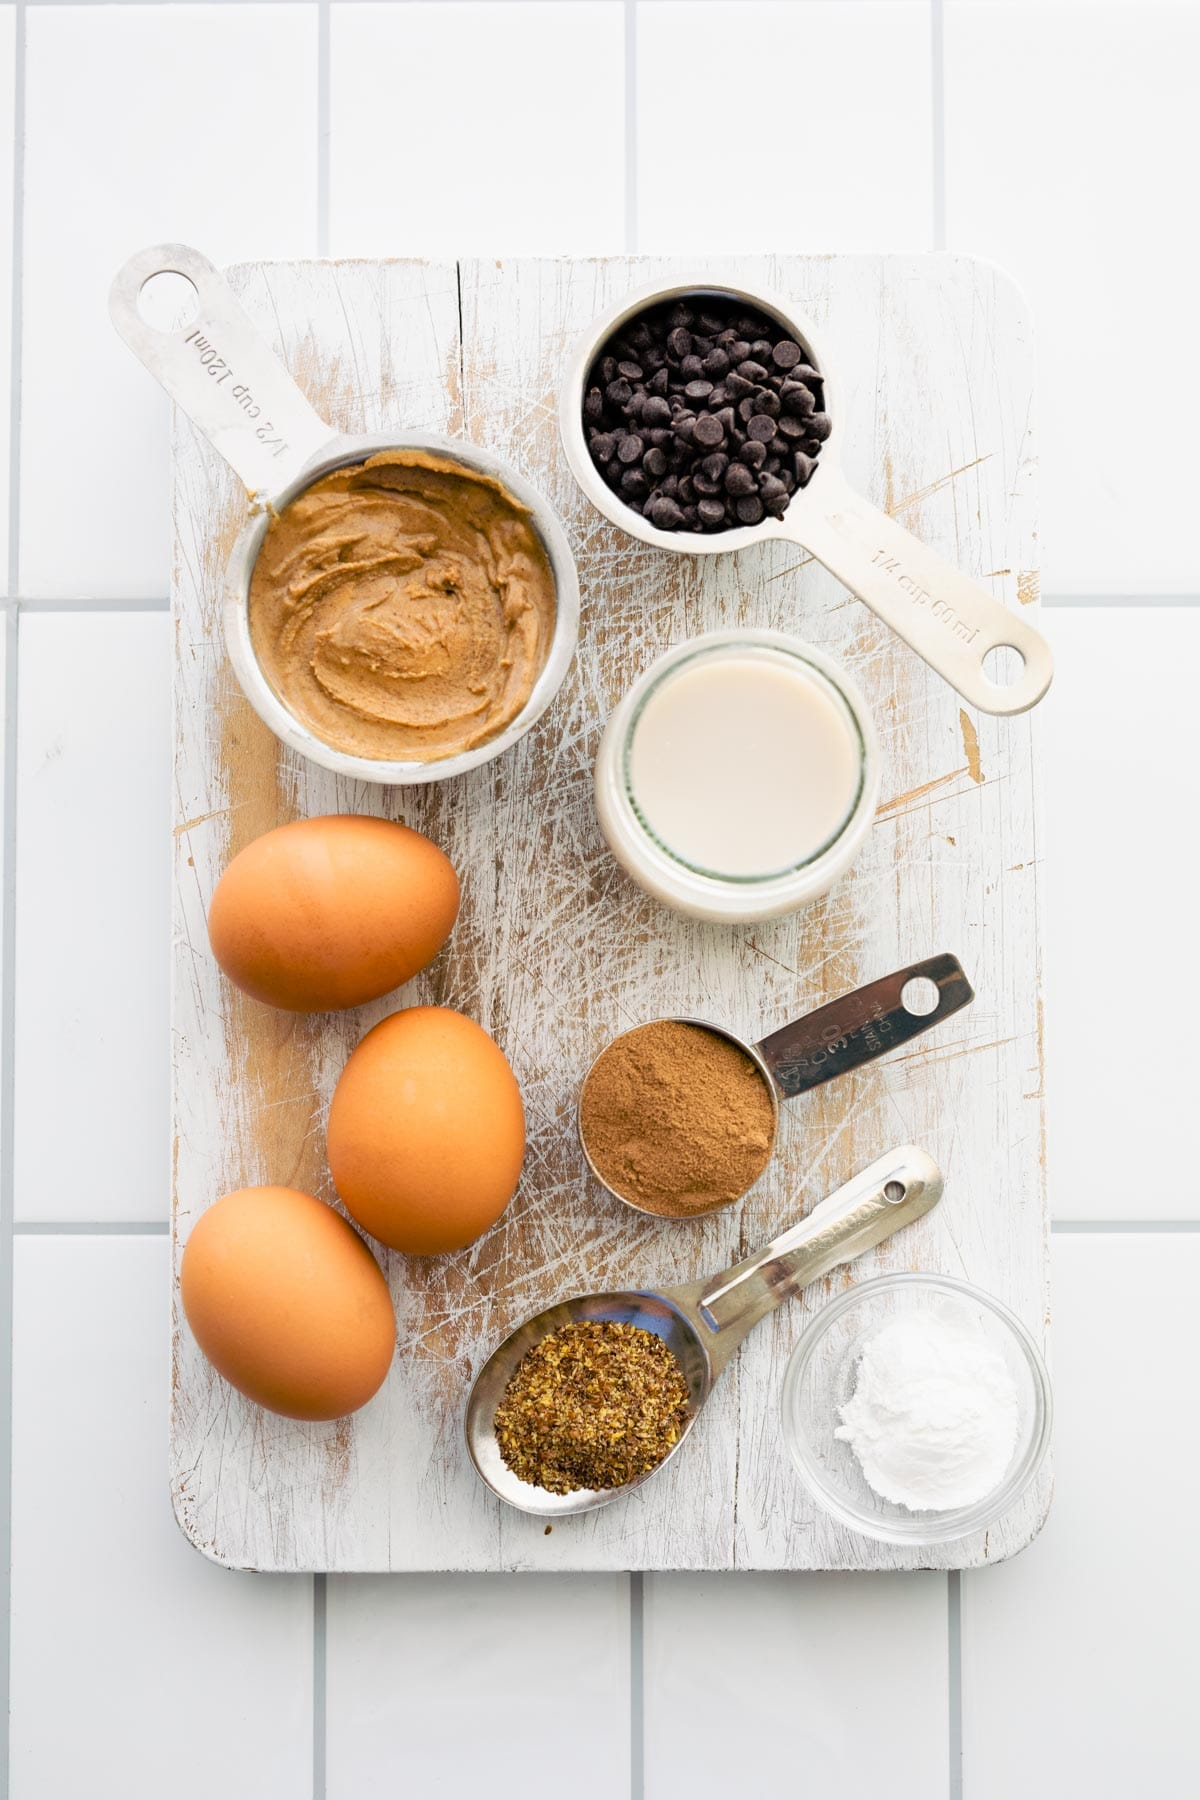 ingredients in measuring cups and bowls to make chocolate protein pancakes